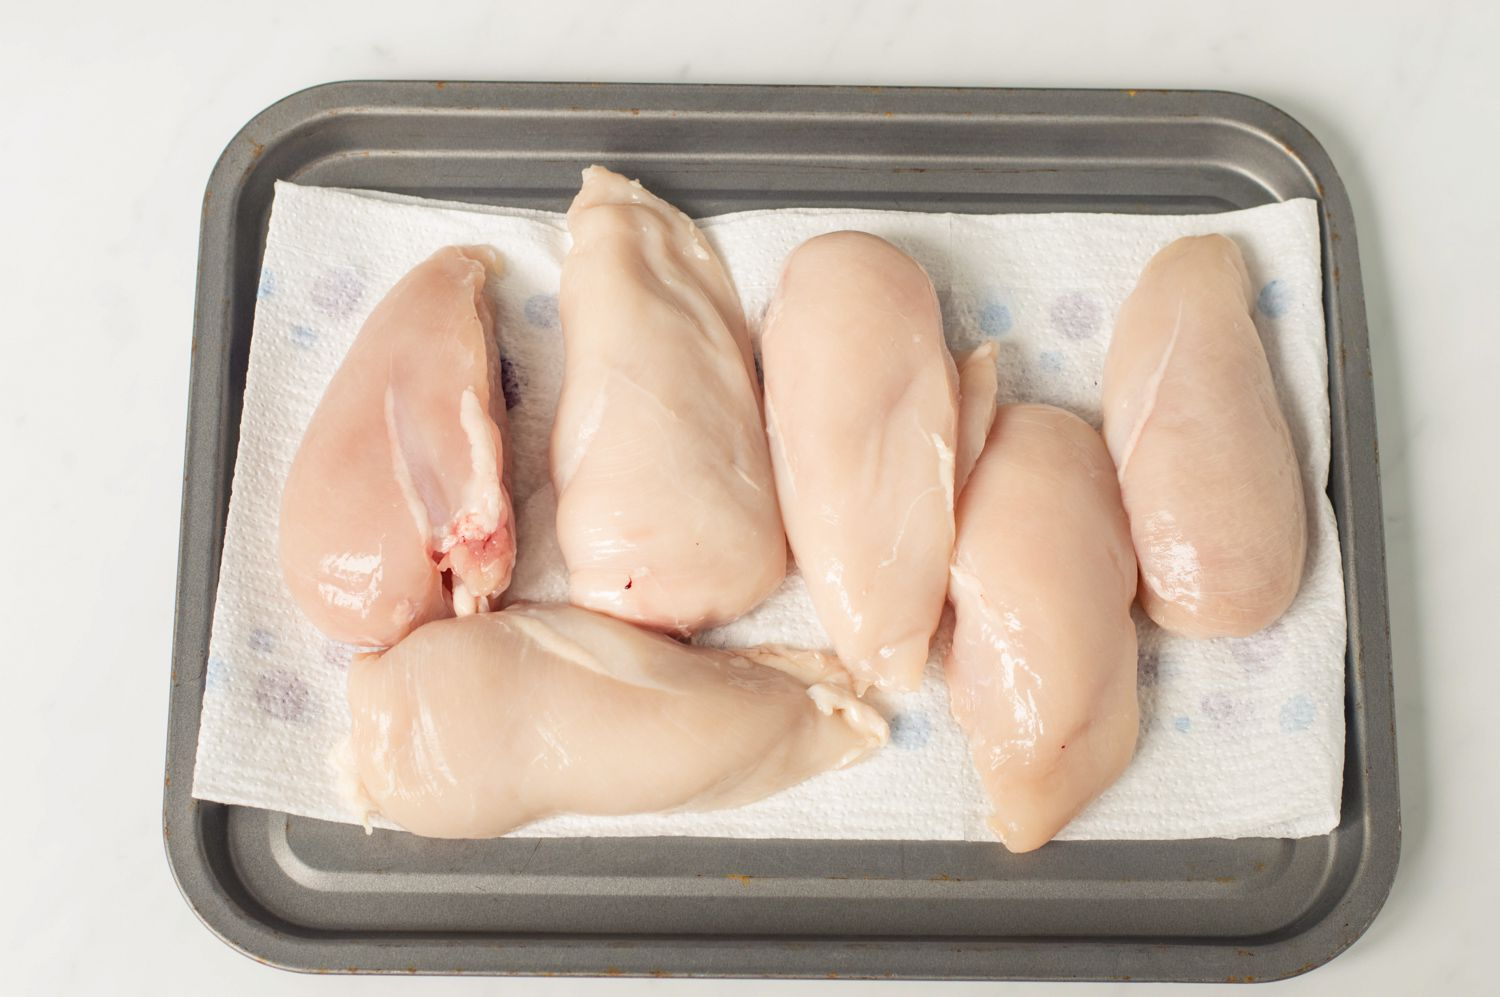 Chicken breasts drying on paper towels